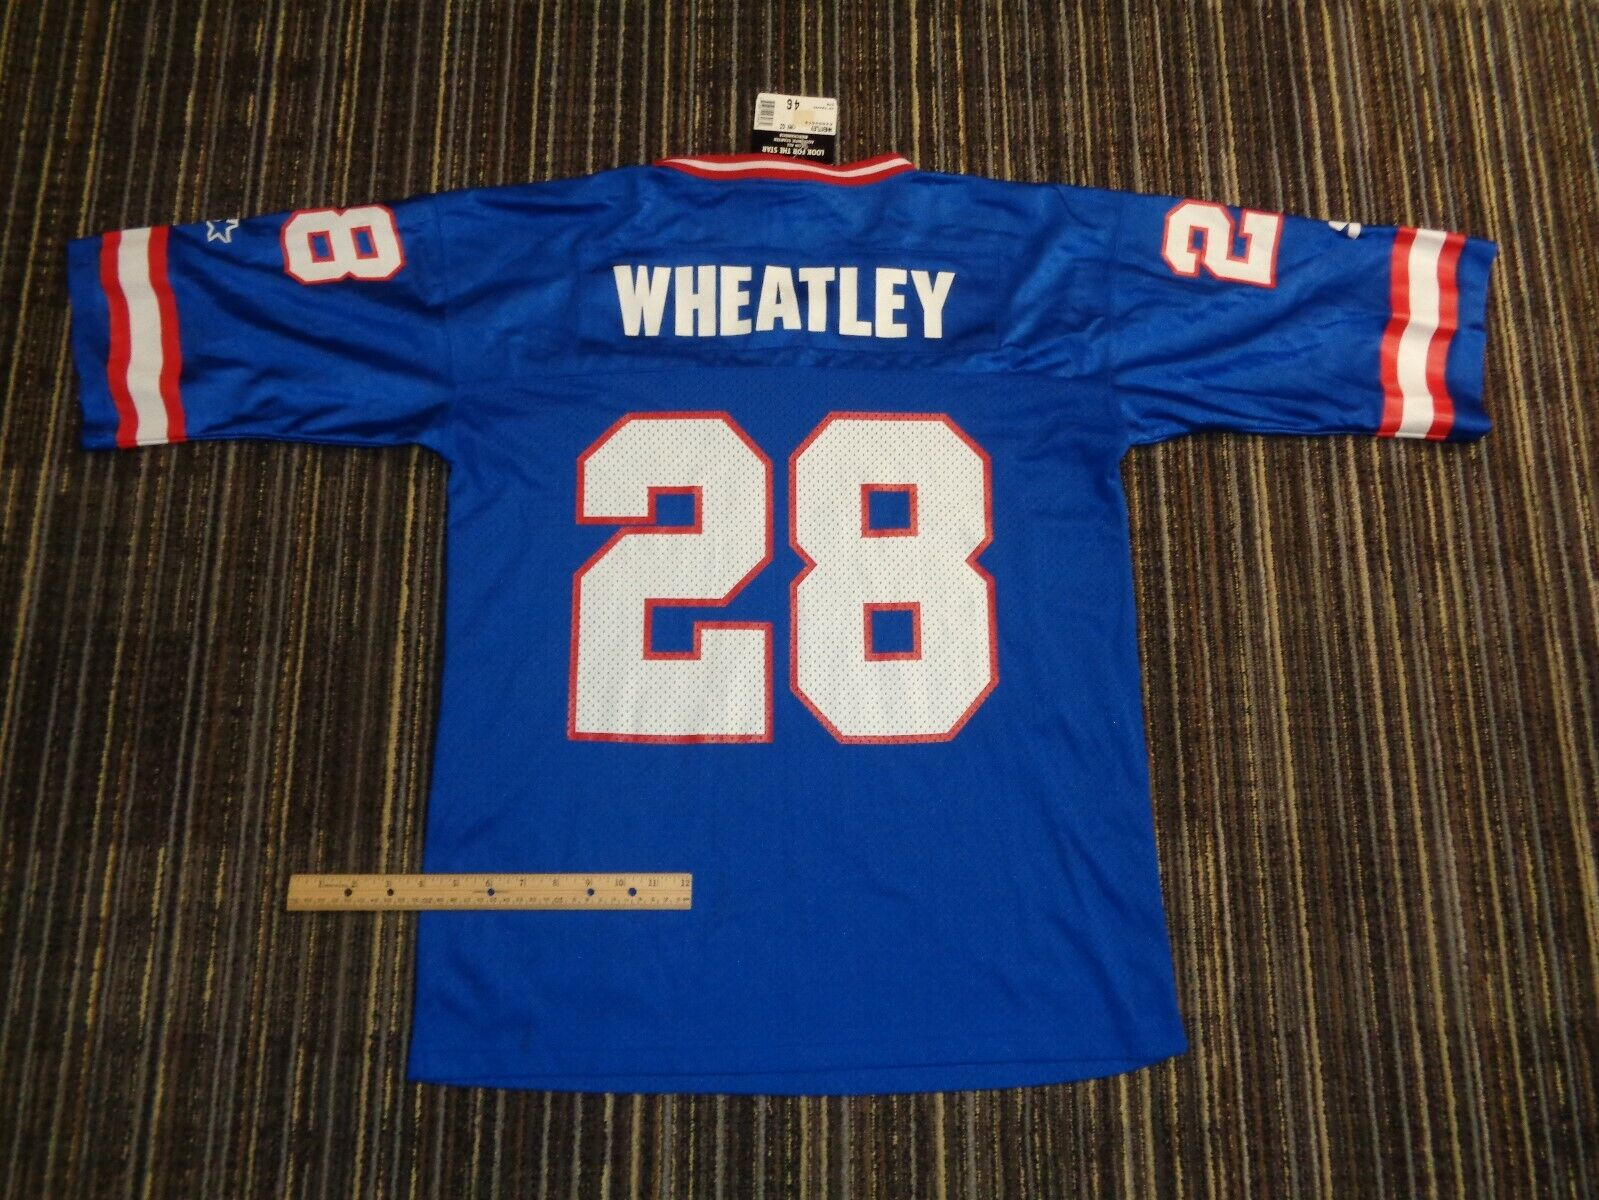 NWT TYRONE WHEATLEY 28 NY NEW YORK GIANTS STARTER NFL GAME FOOTBALL JERSEY MD  - $39.99